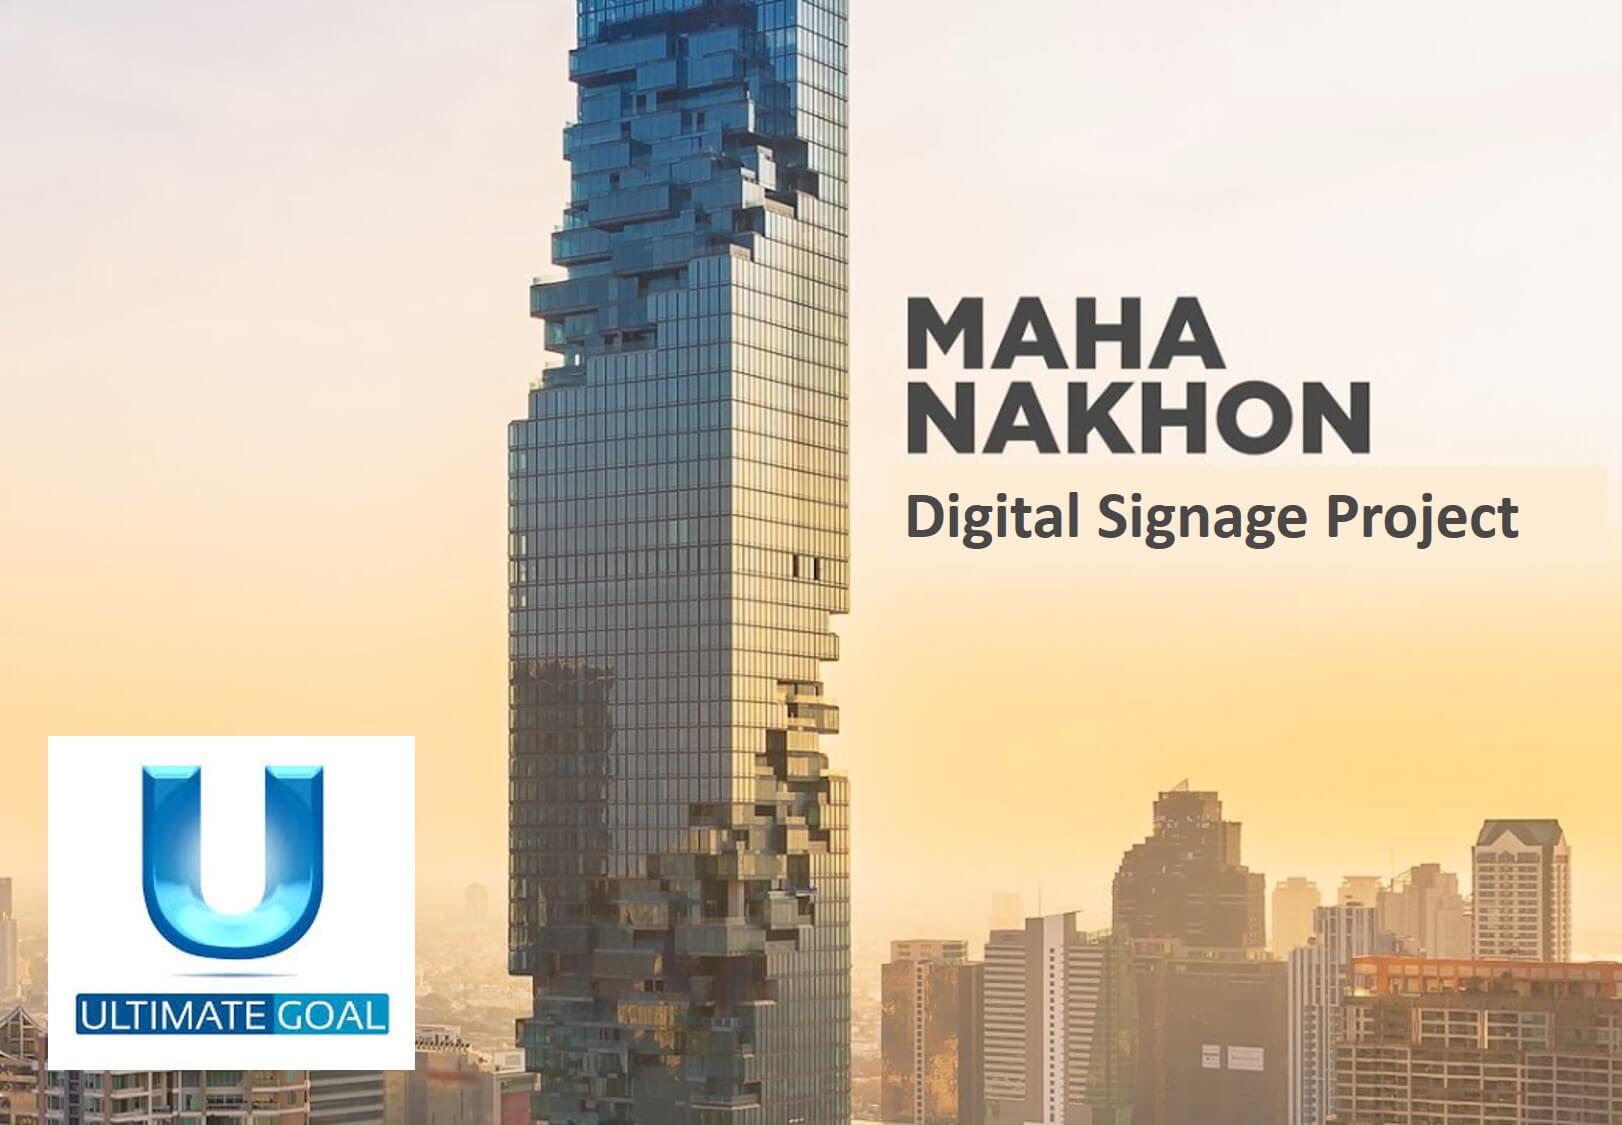 Maha Nakhon Digital Signage Project by Monitors Anywhere